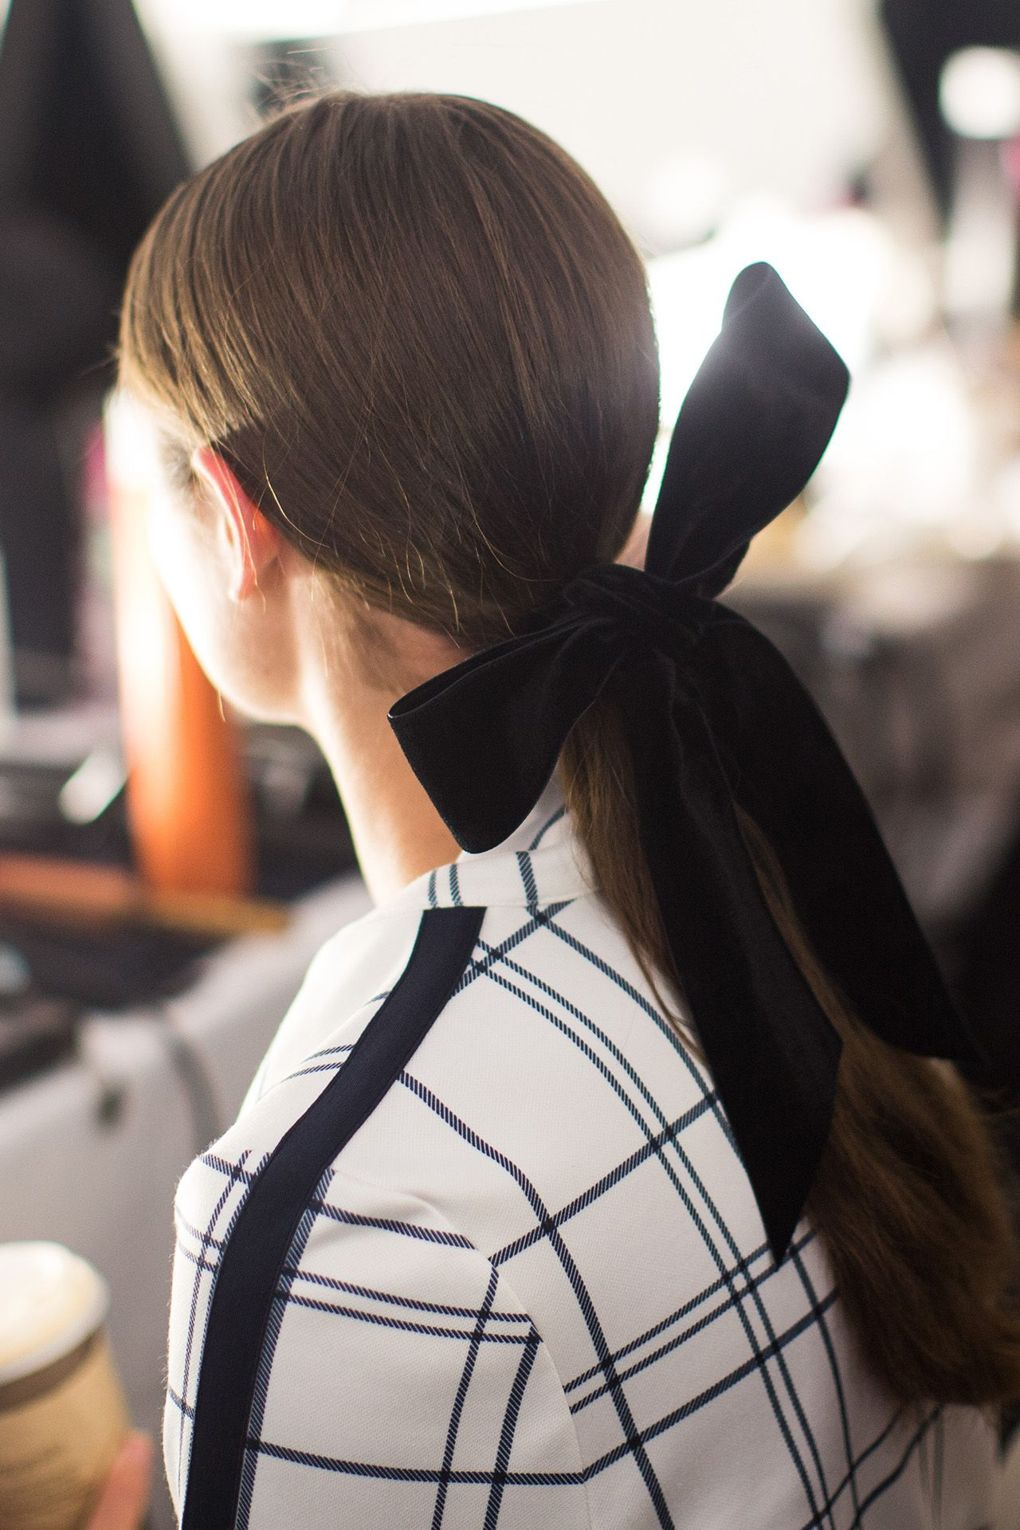 The City: New York The Show: Tory Burch The Look: Pretty bows